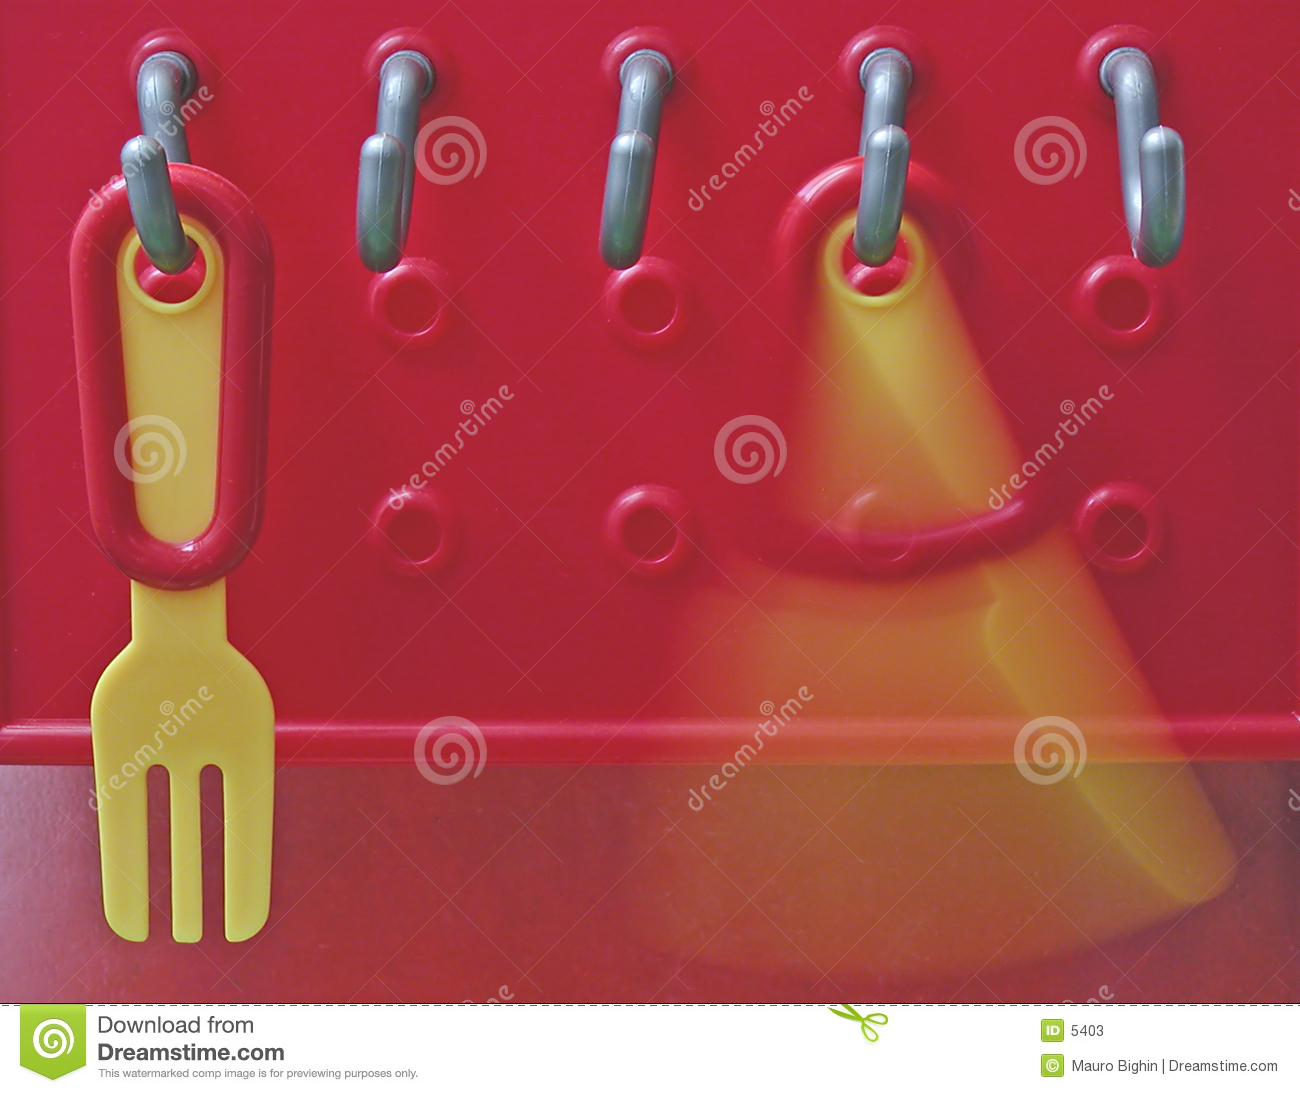 Plastic fork and knife